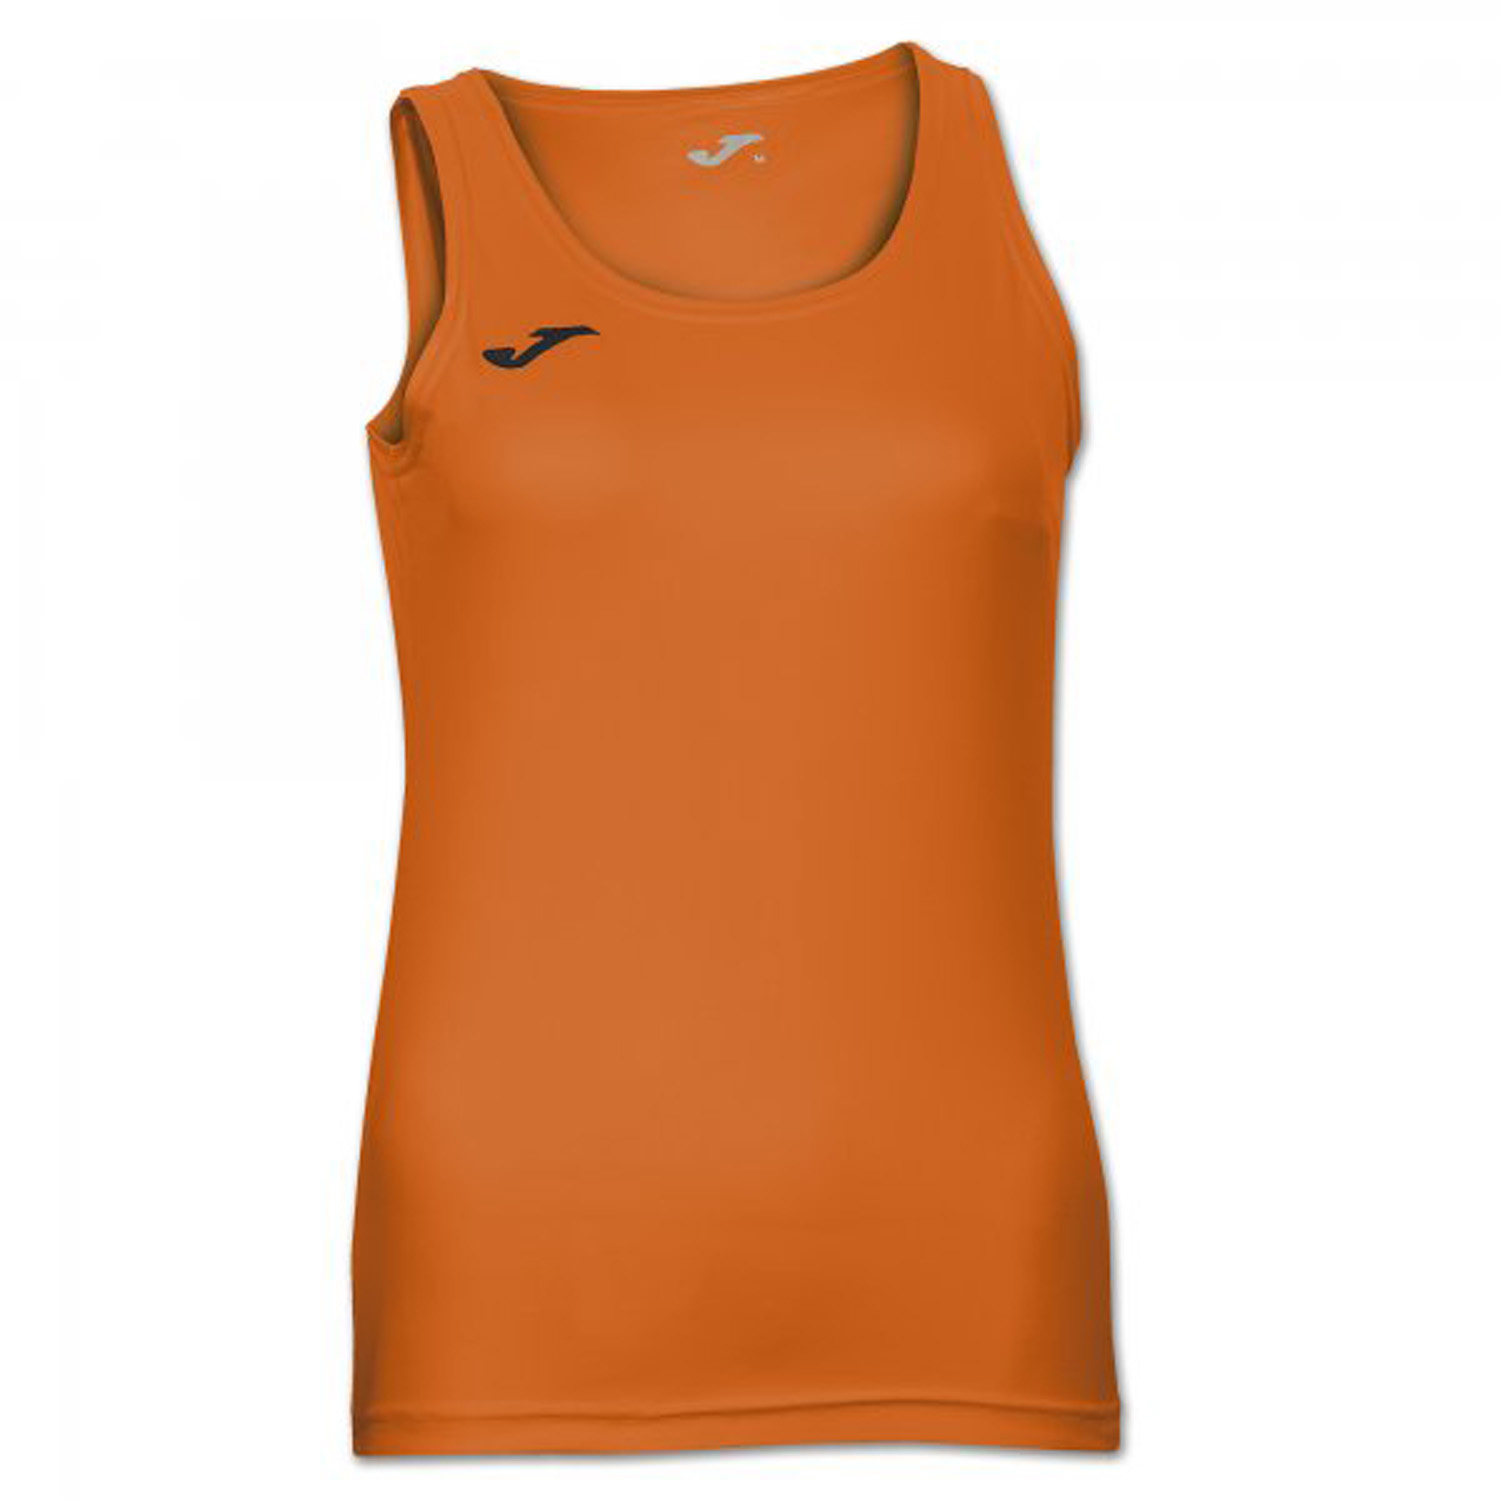 JOMA-DIANA-SLEEVELESS-WOMEN-SHIRT-Uniforms-MAGLIA-DONNA